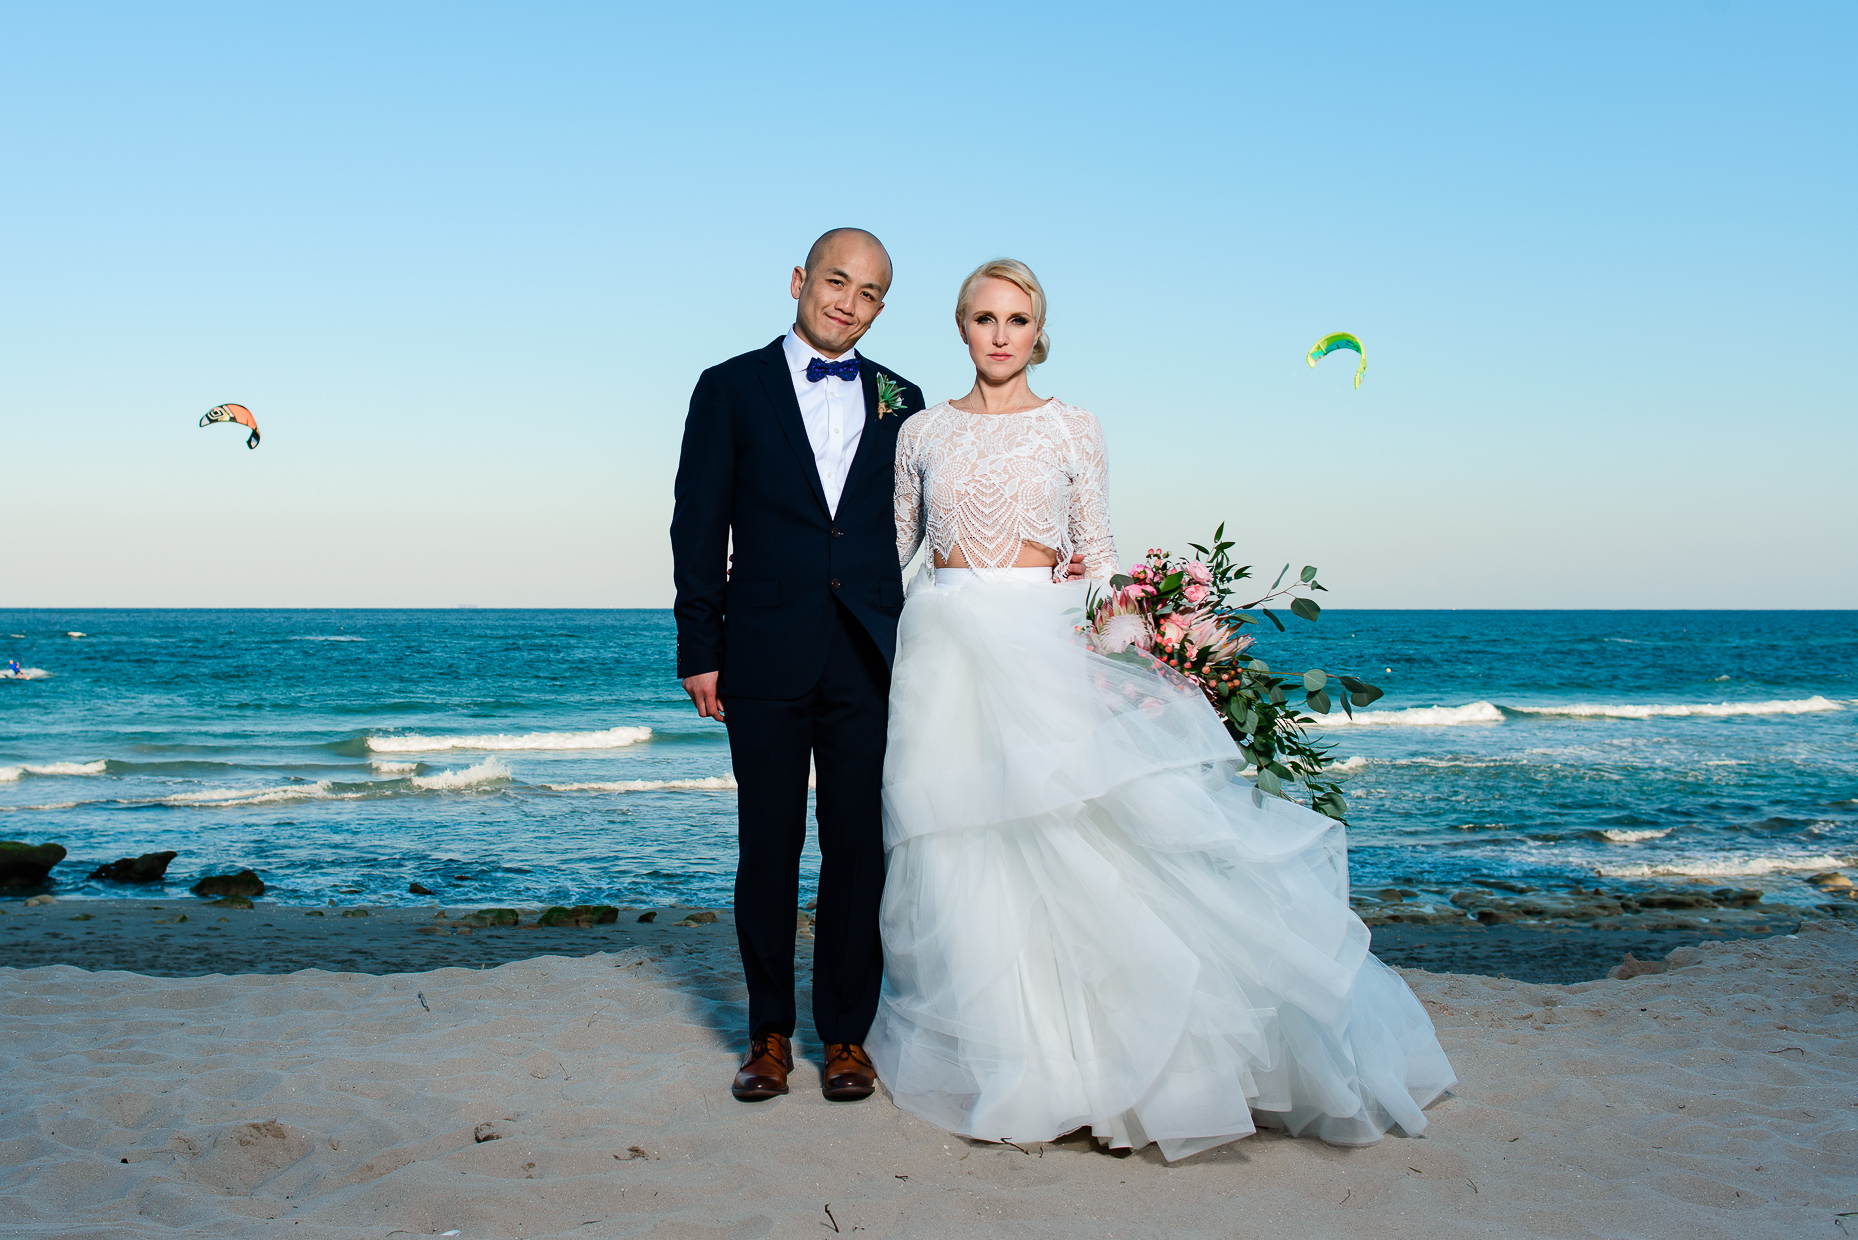 austin-wedding-photographer-destination-beach-hipster